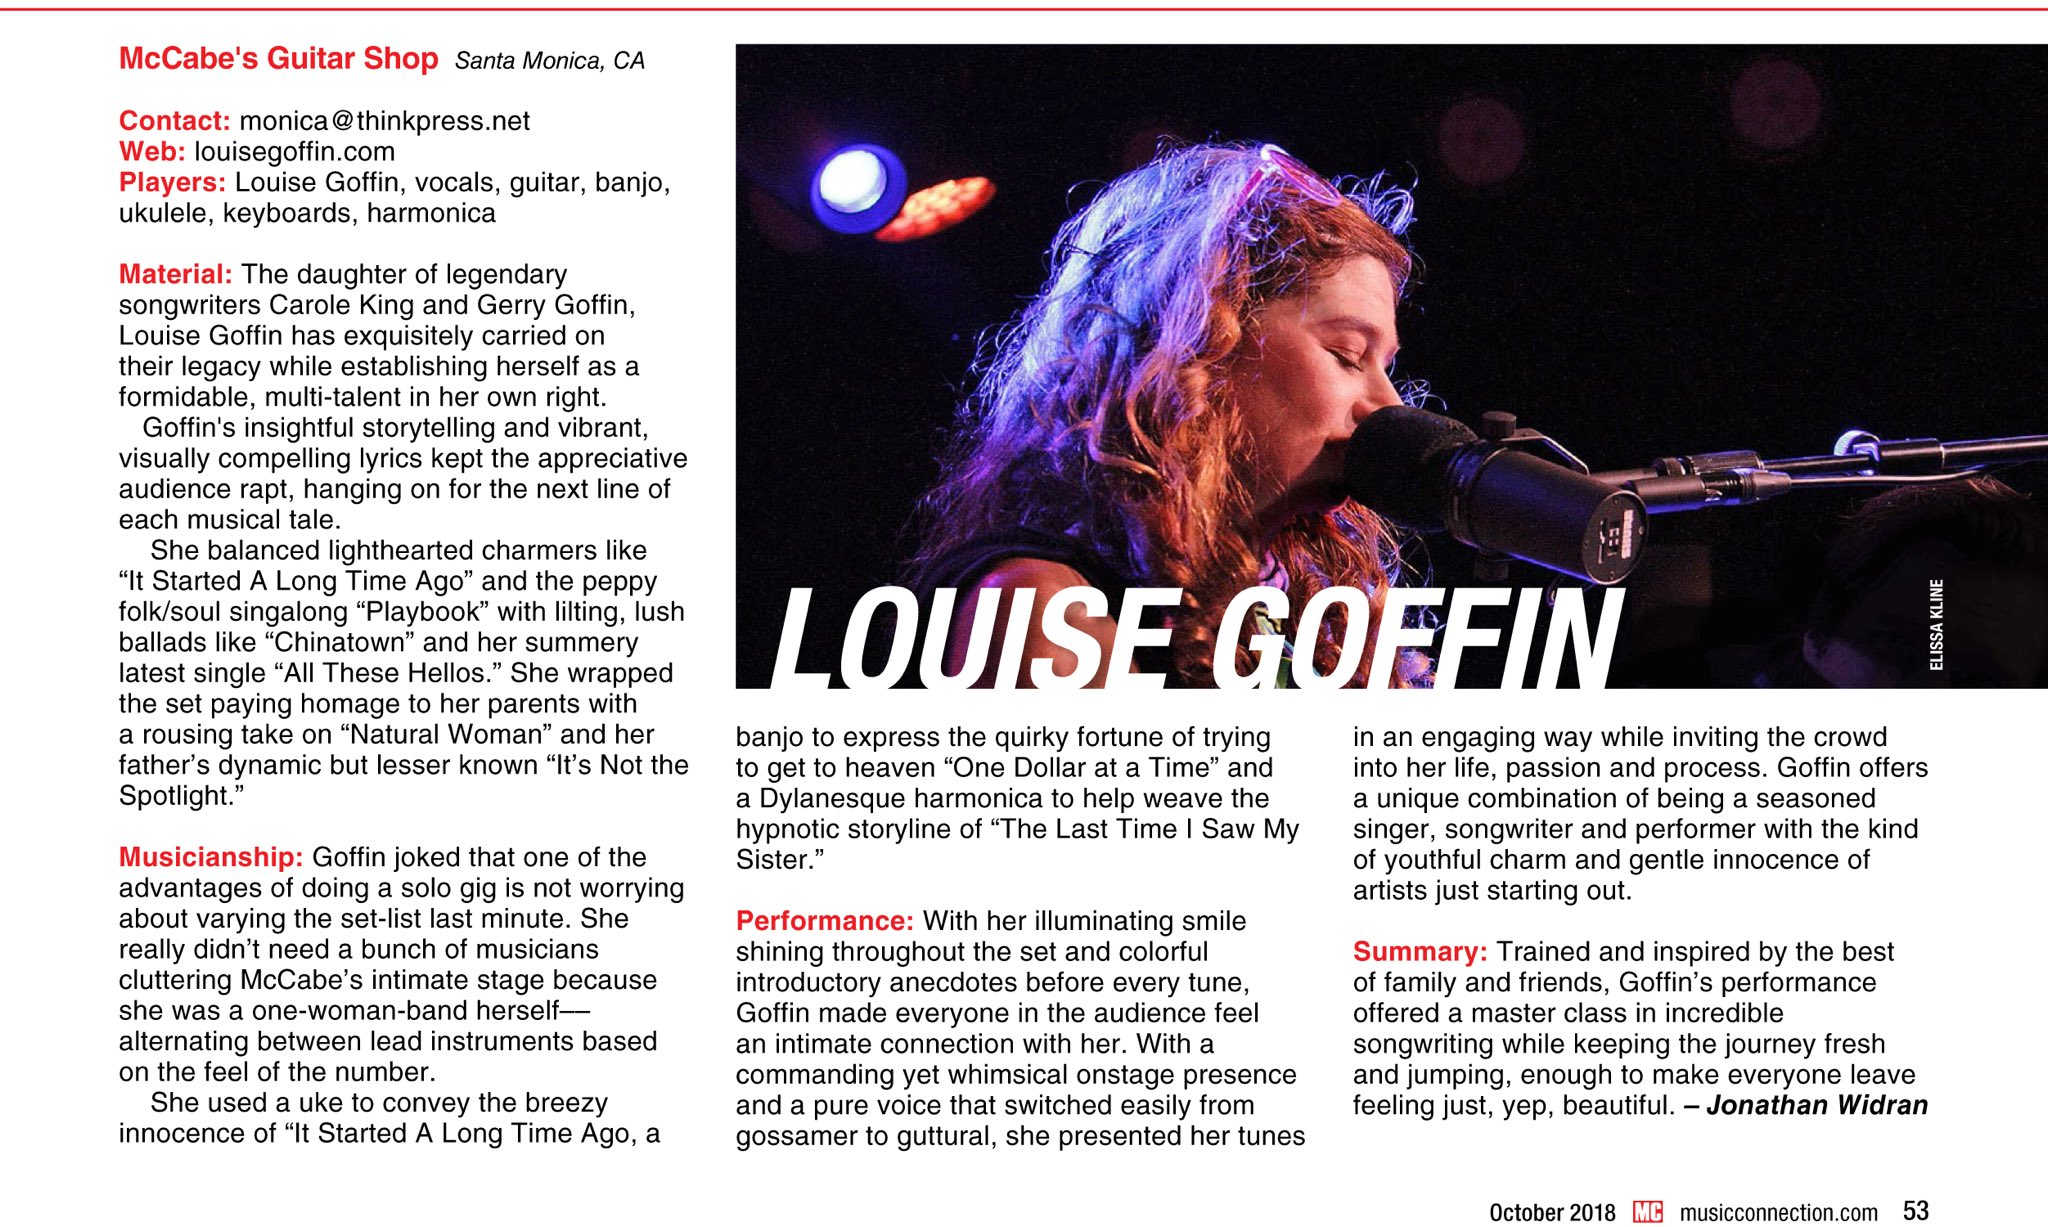 Reloaded twaddle – RT @LouiseGoffin: With a commanding yet whimsical onstage presence and a pure vo...